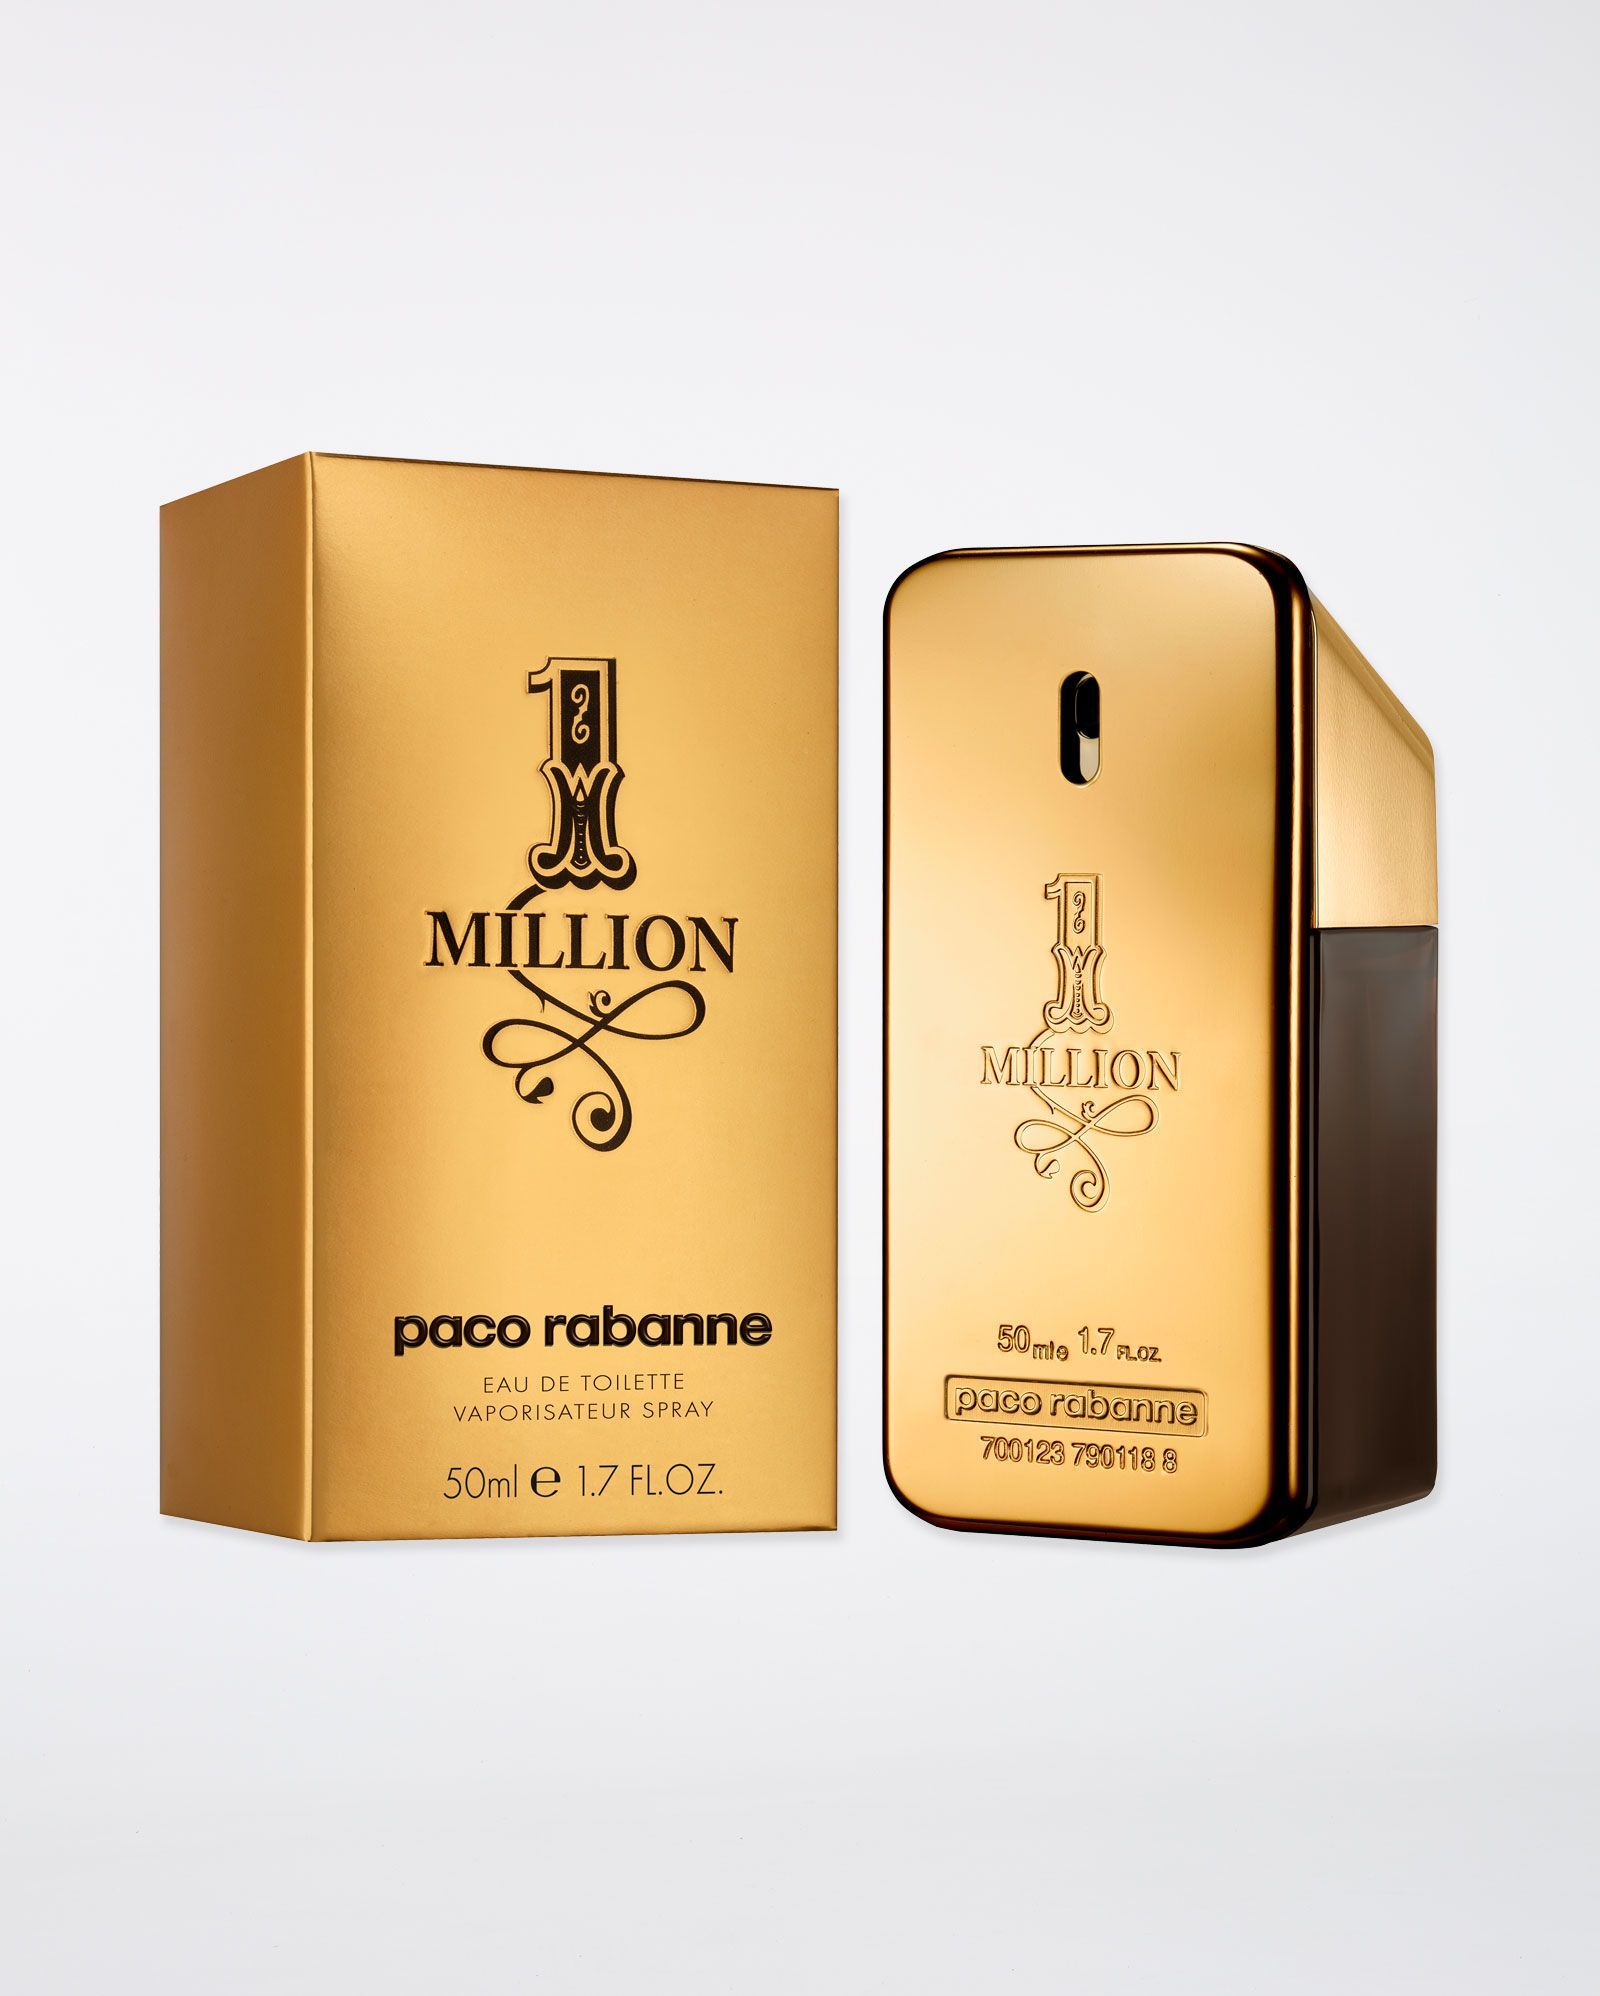 1 Million Paco Rabanne Masc Eau de Toilette 50ml